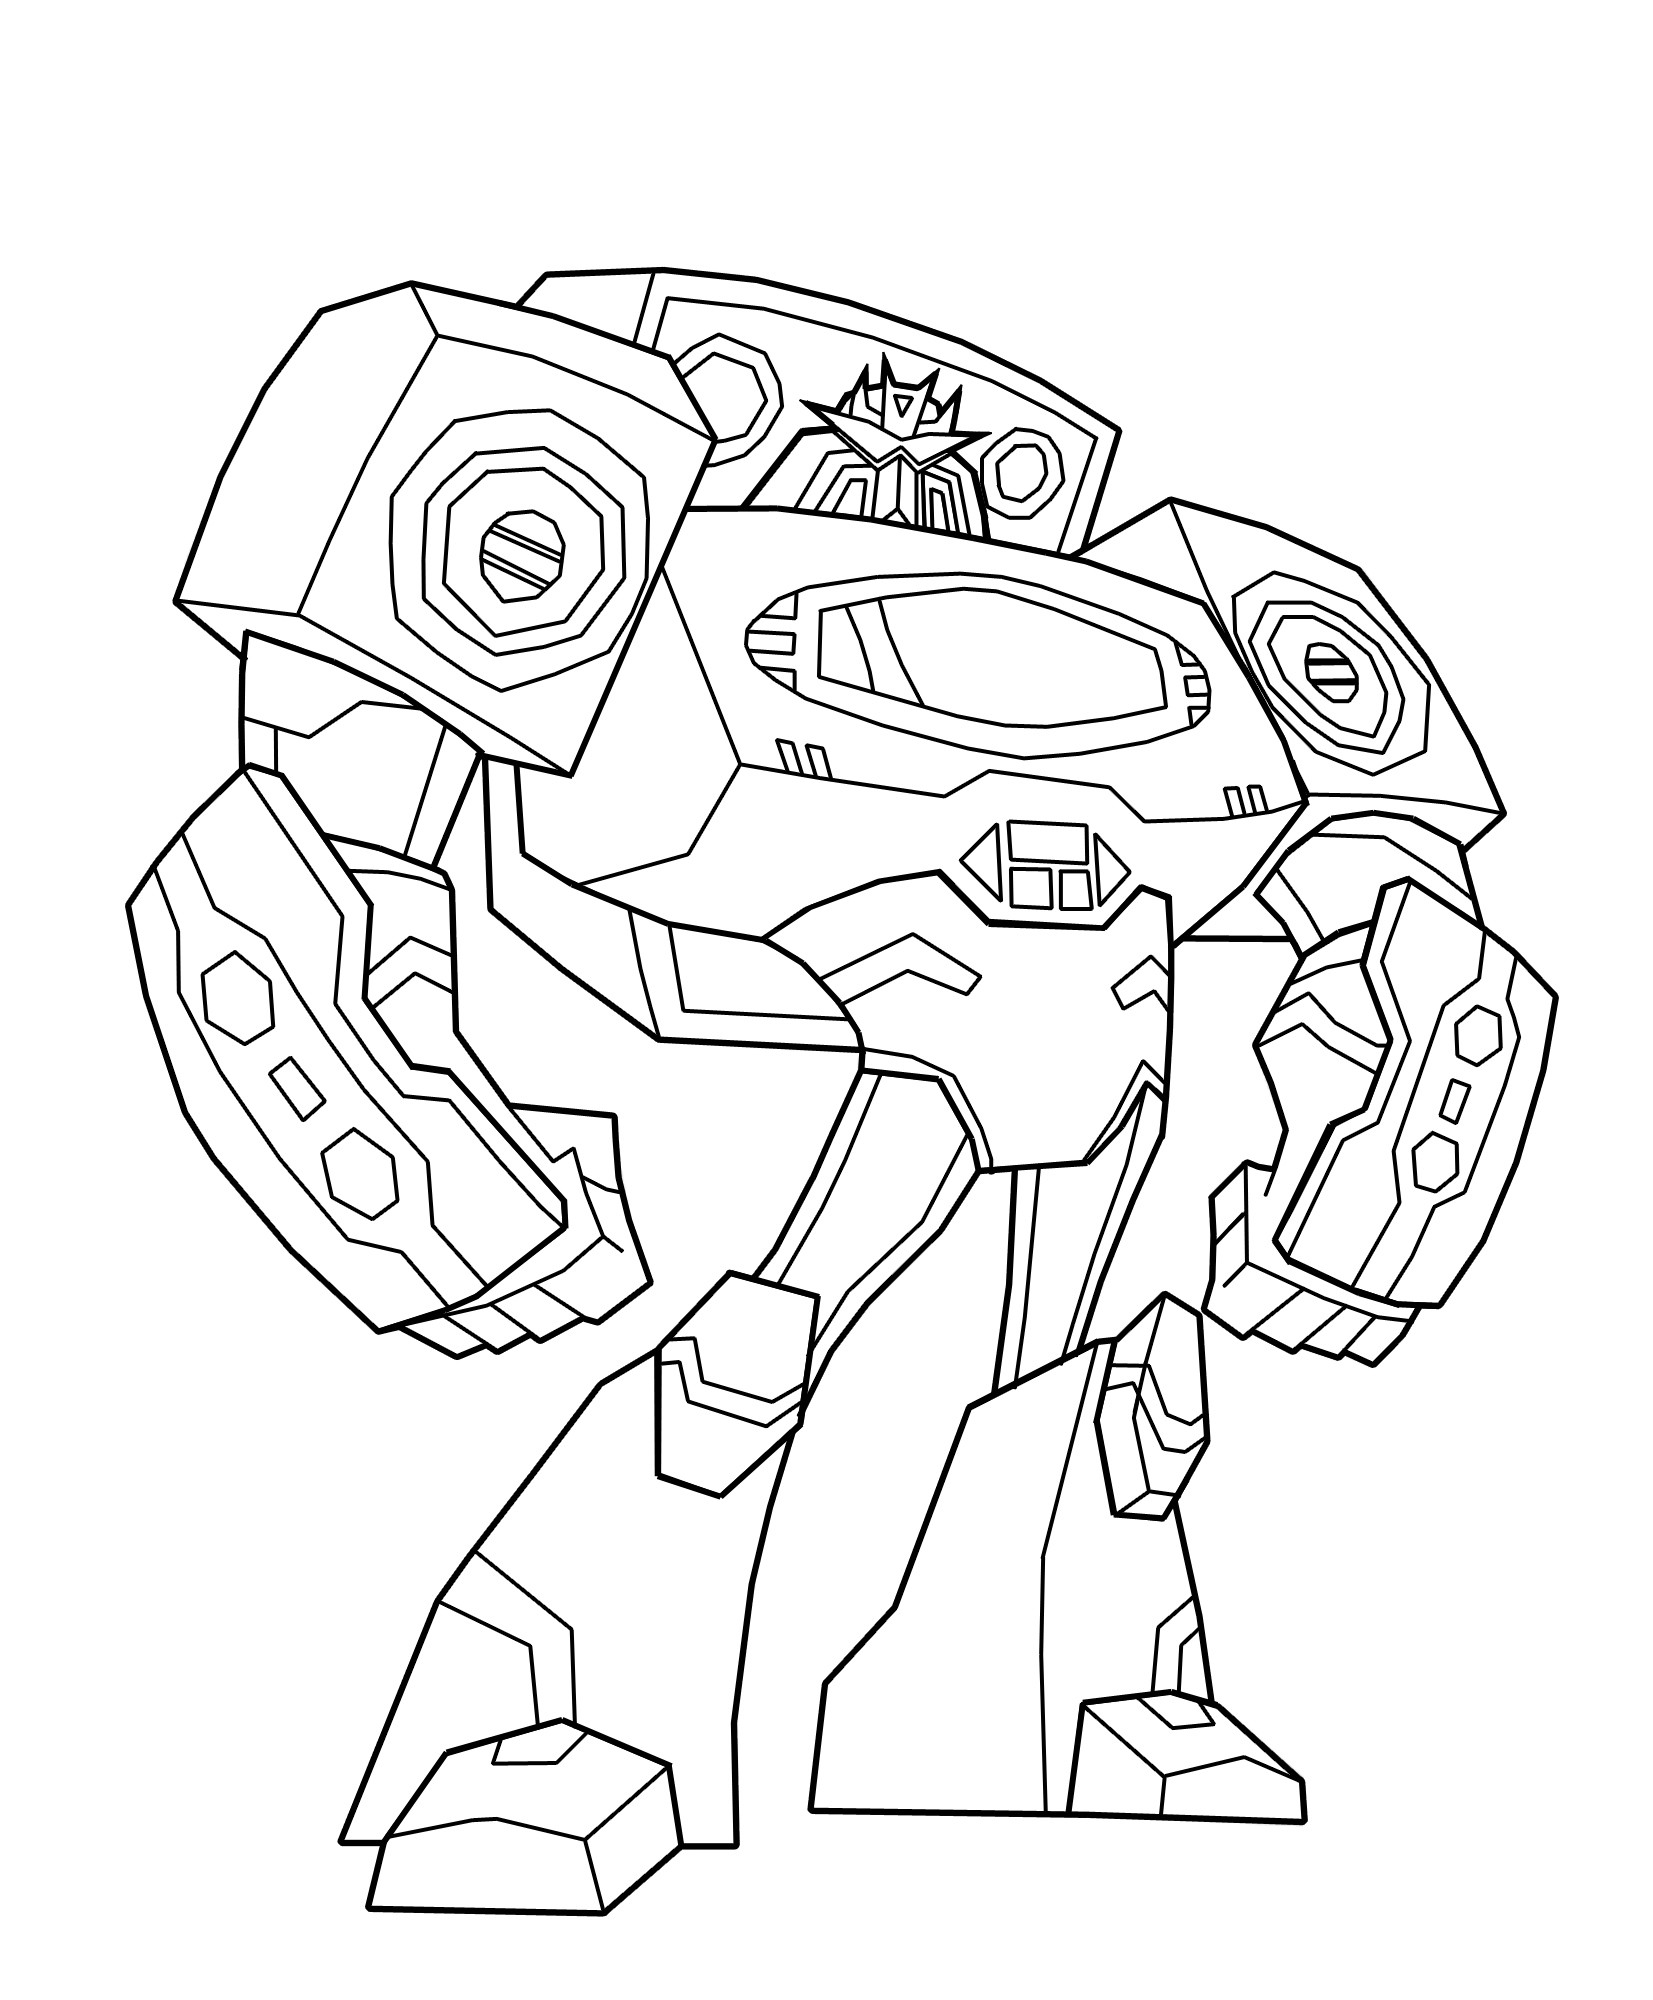 Best ideas about Transformers Free Coloring Pages . Save or Pin Transformers Coloring Pages Soundwave Now.